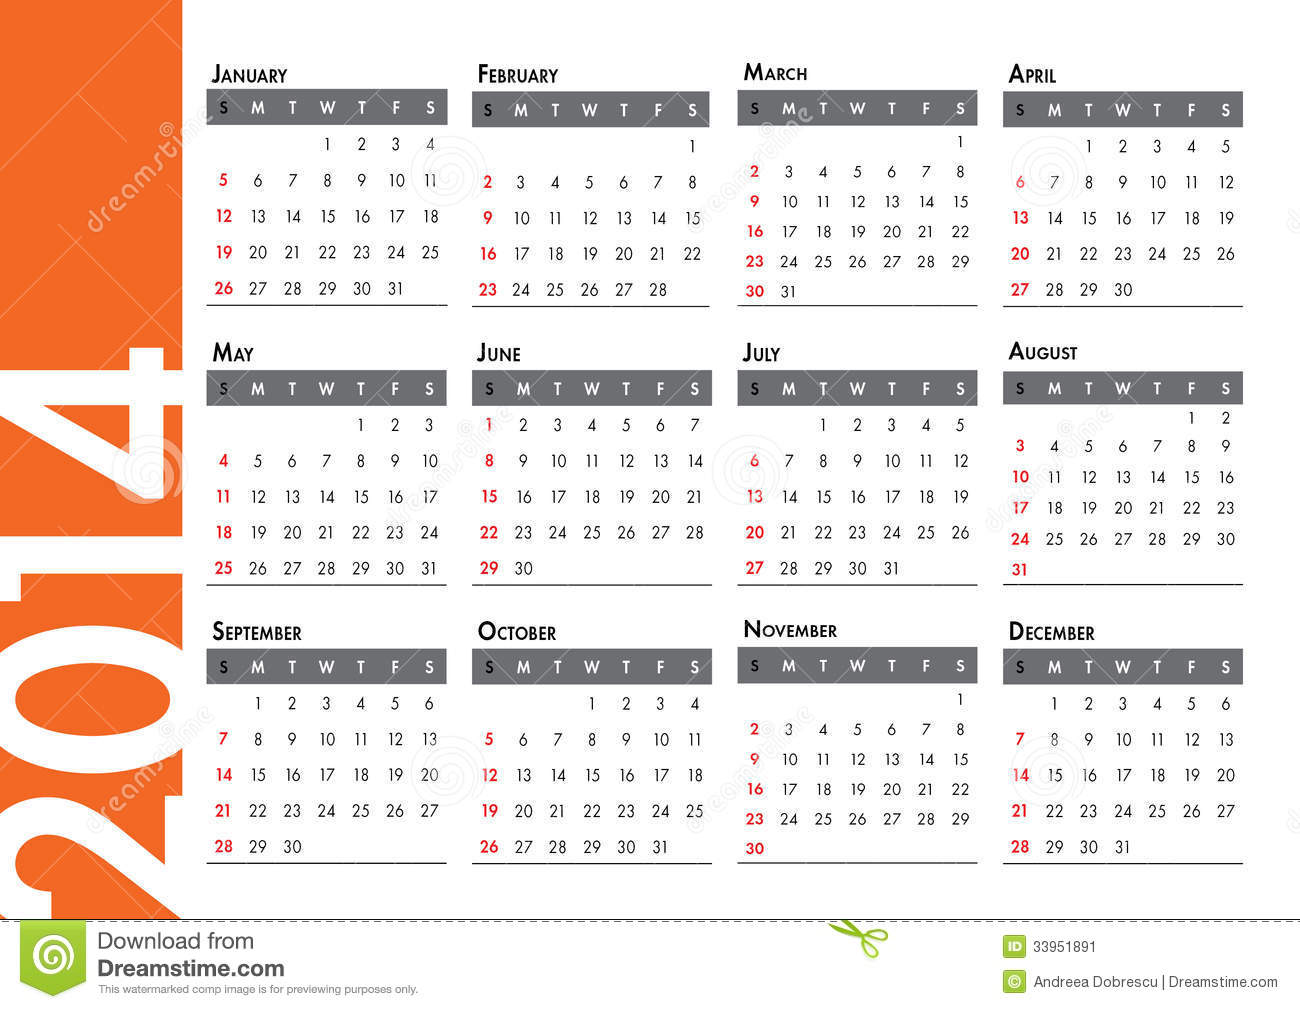 Xs Calendar April : Calendar stock image